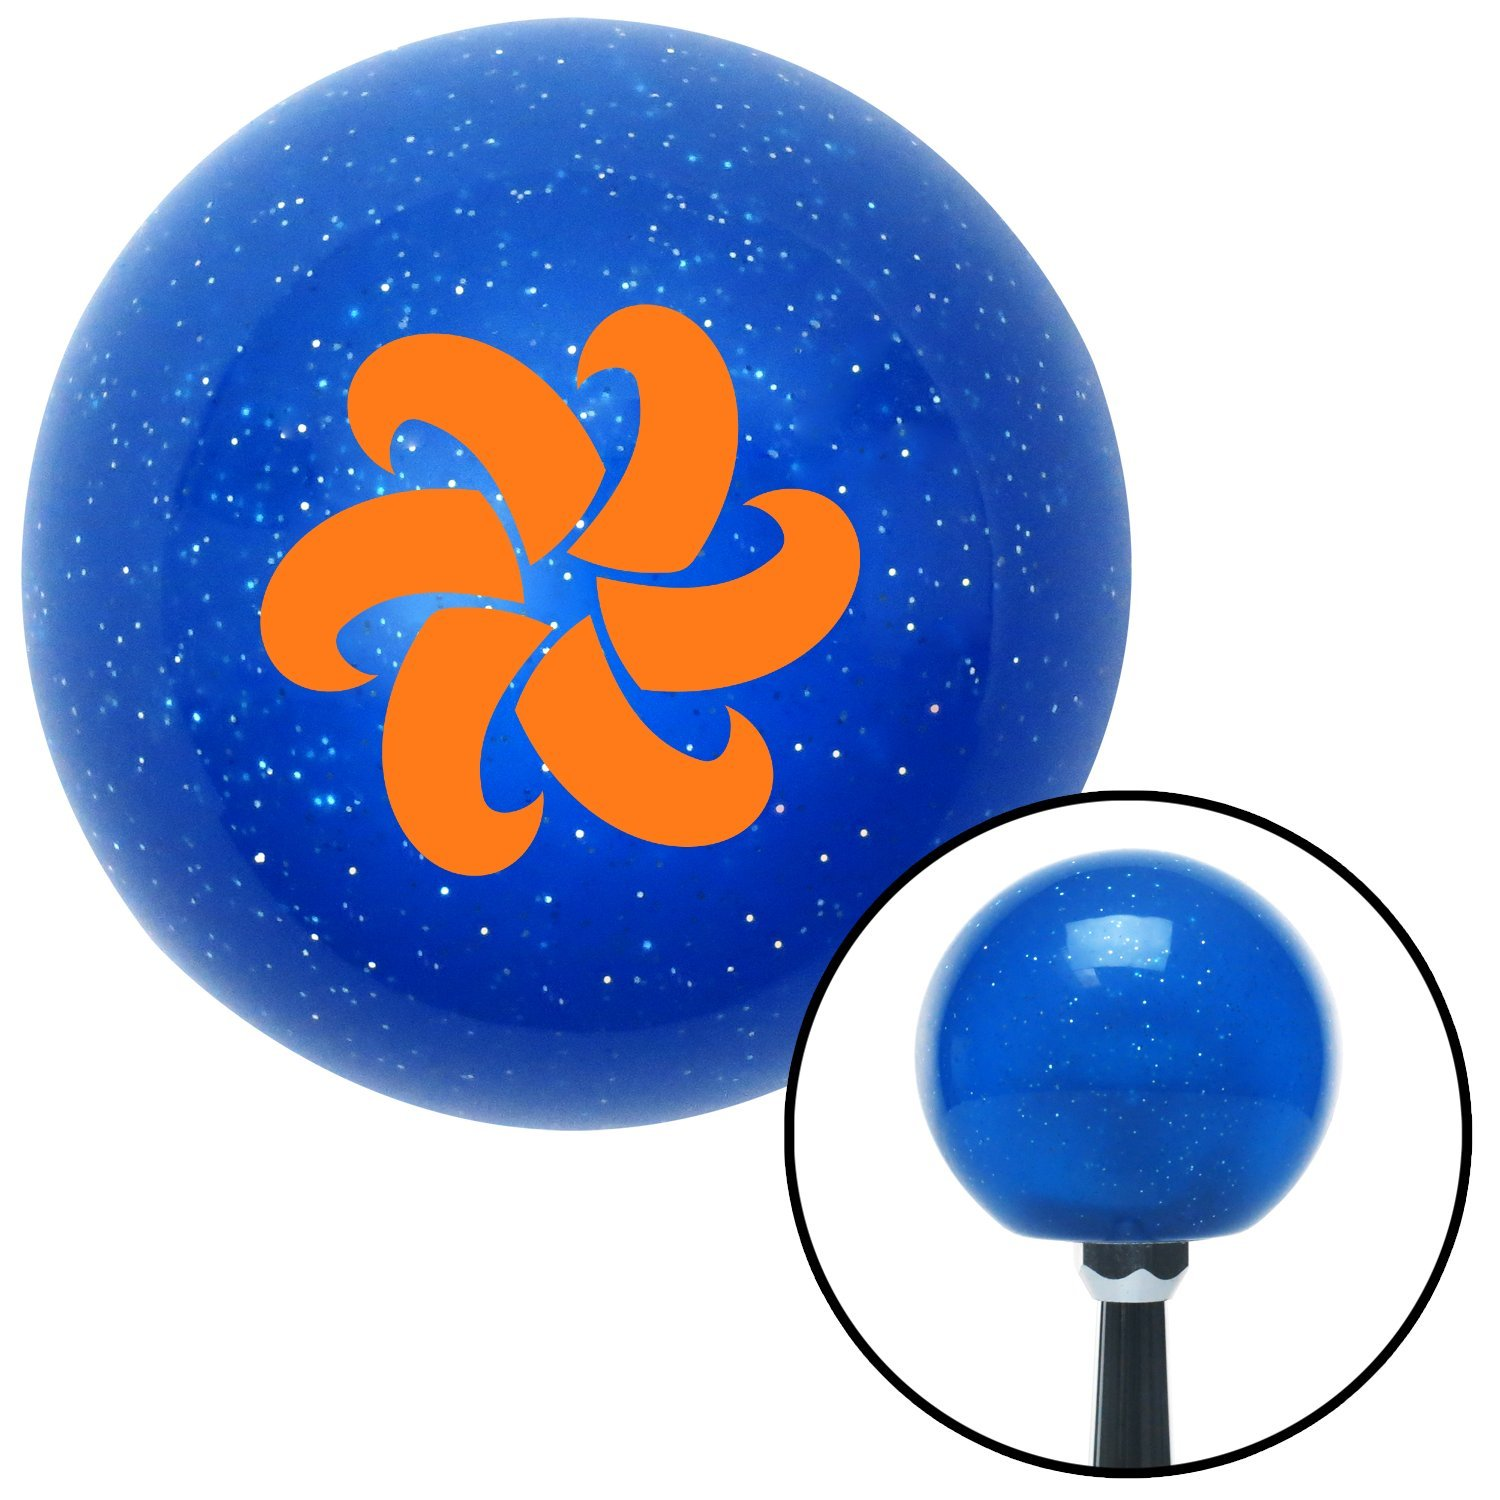 Orange Fan Blades Spinning American Shifter 23606 Blue Metal Flake Shift Knob